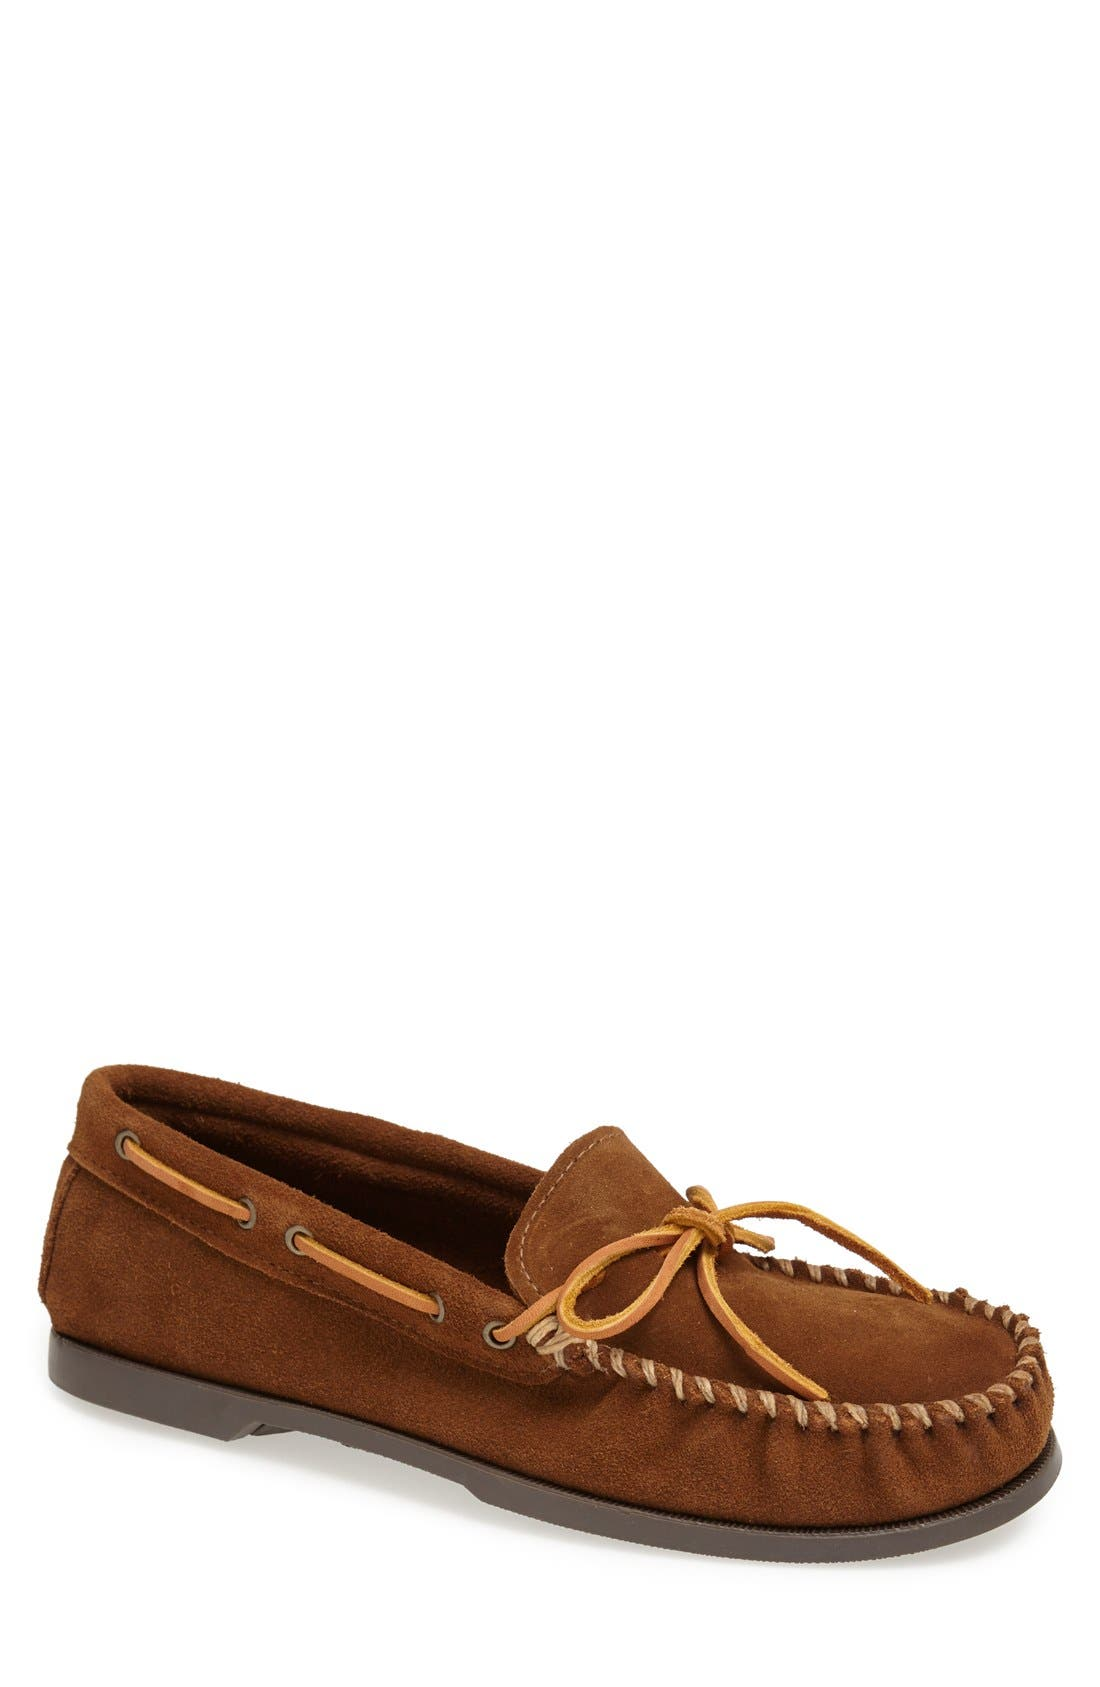 Leather Camp Moccasin,                         Main,                         color, DUSTY BROWN